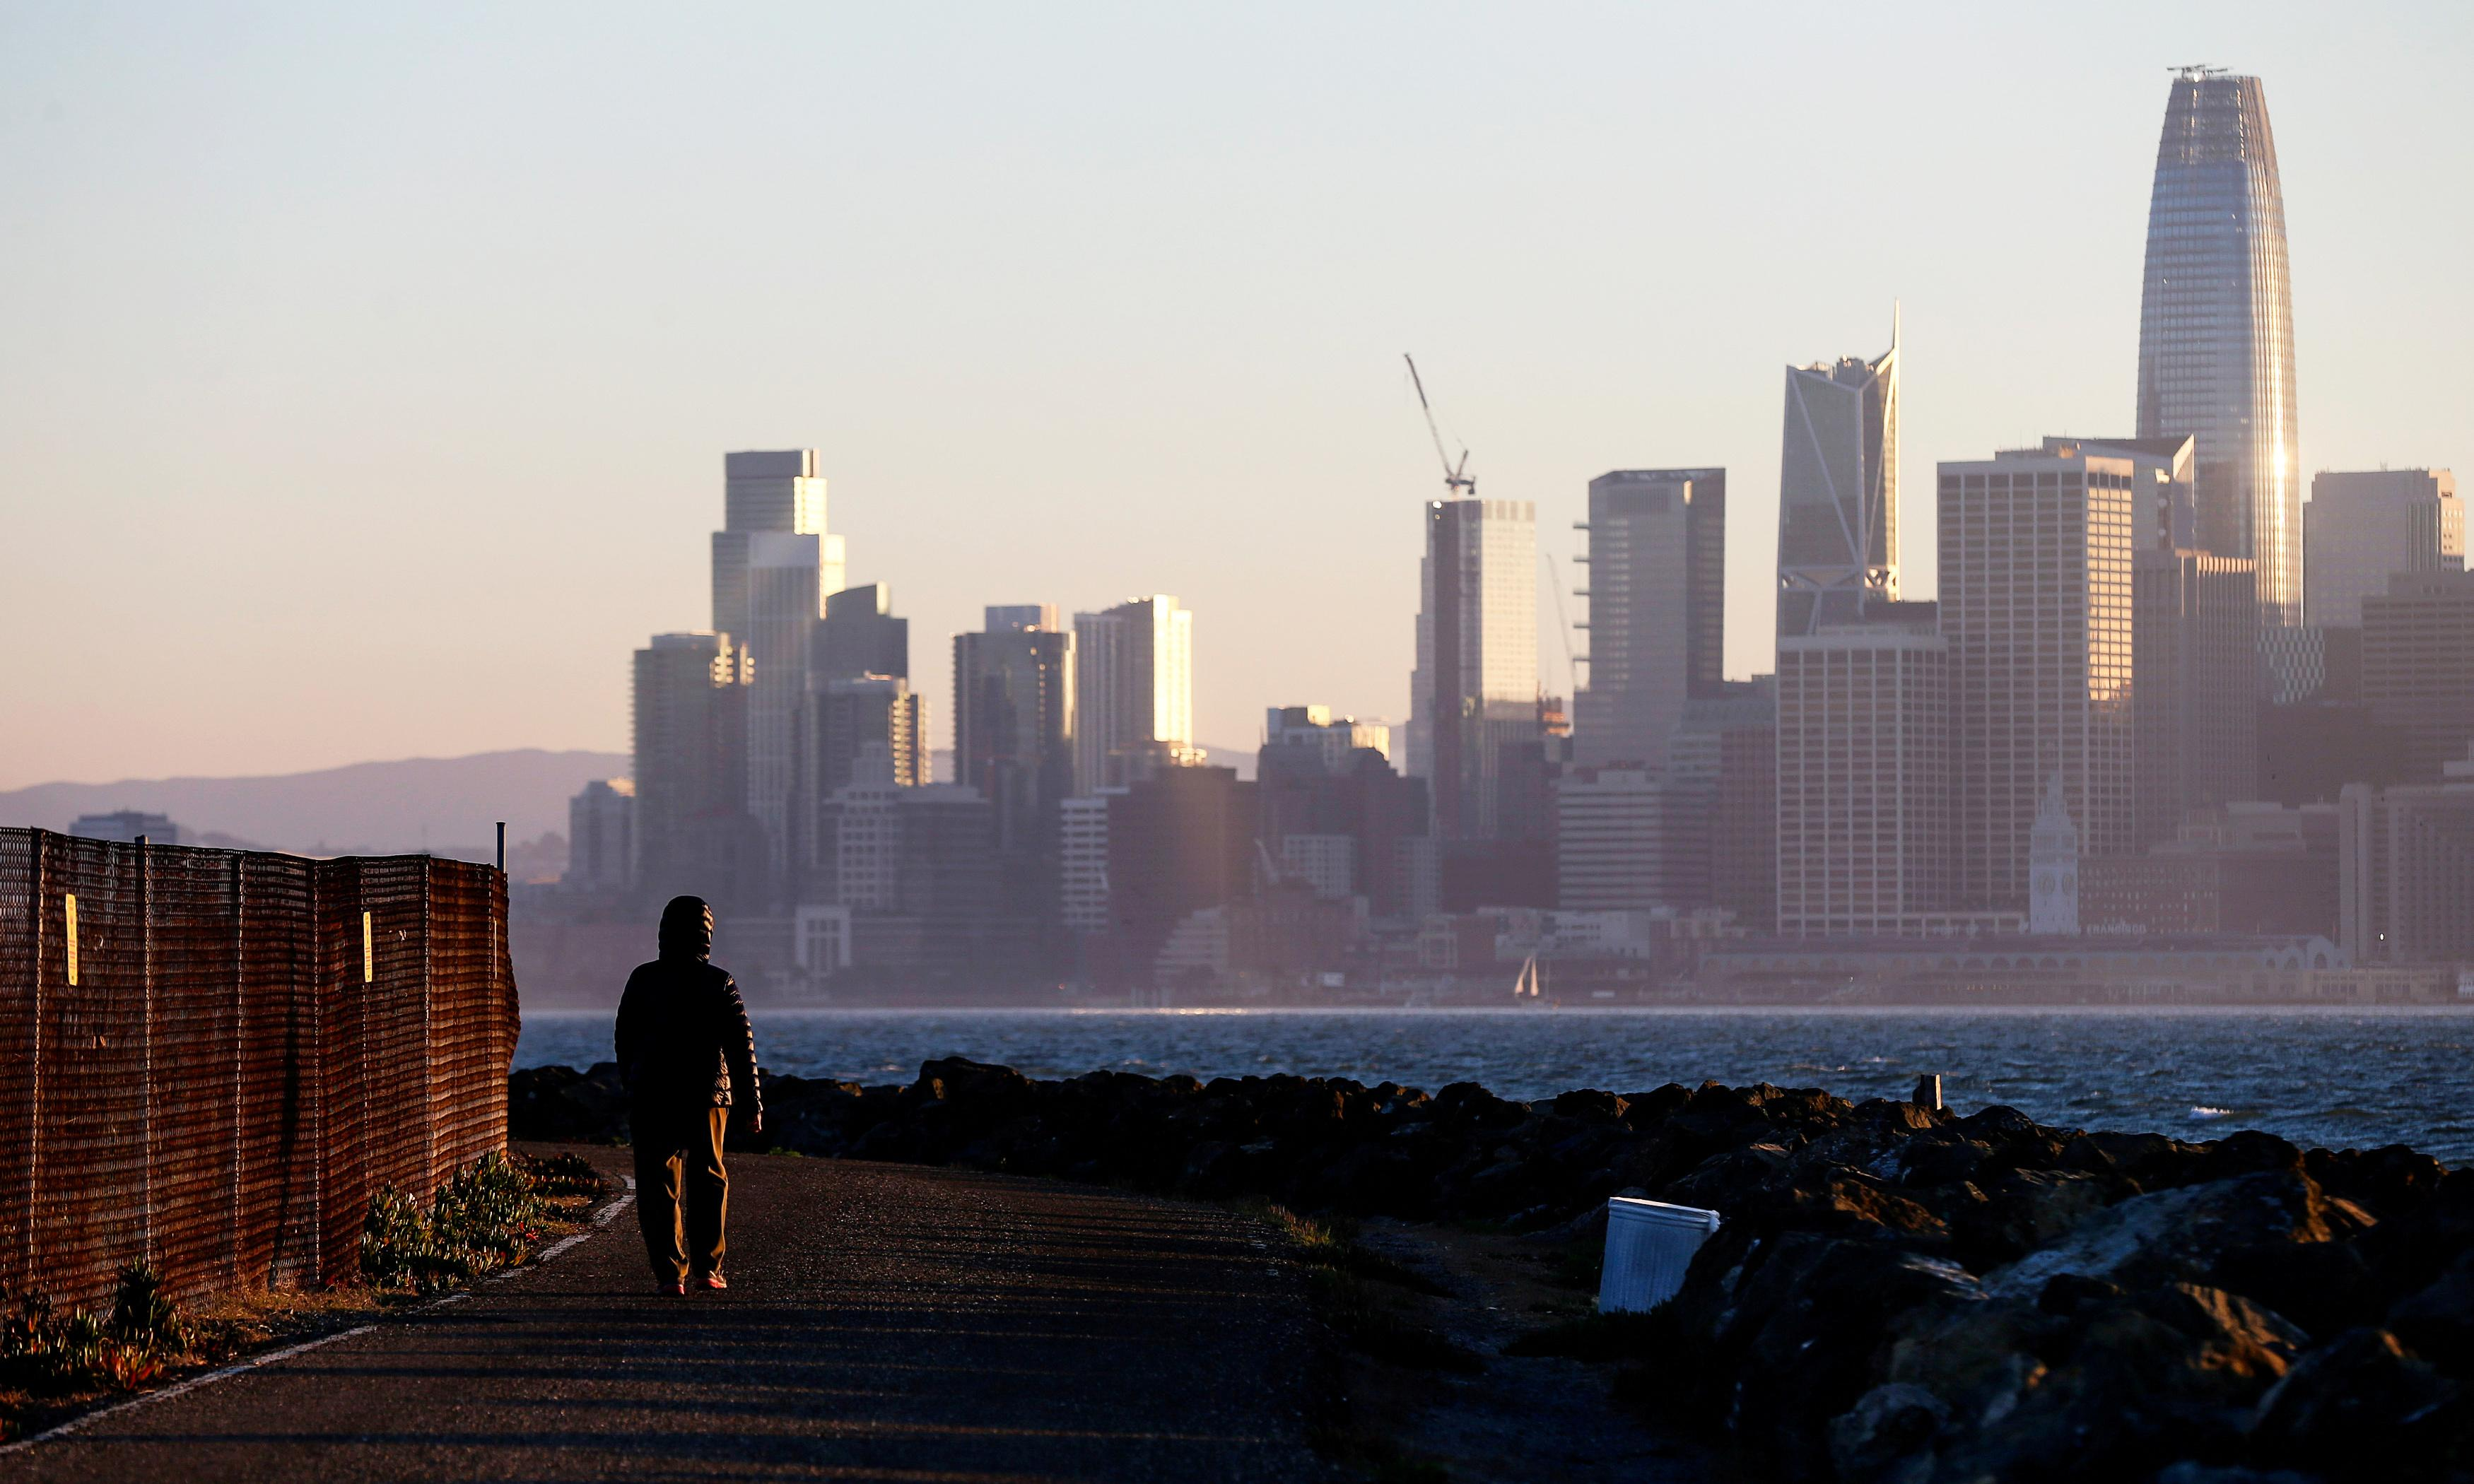 Abandoned stores, empty homes: why San Francisco's economic boom looks like a crisis